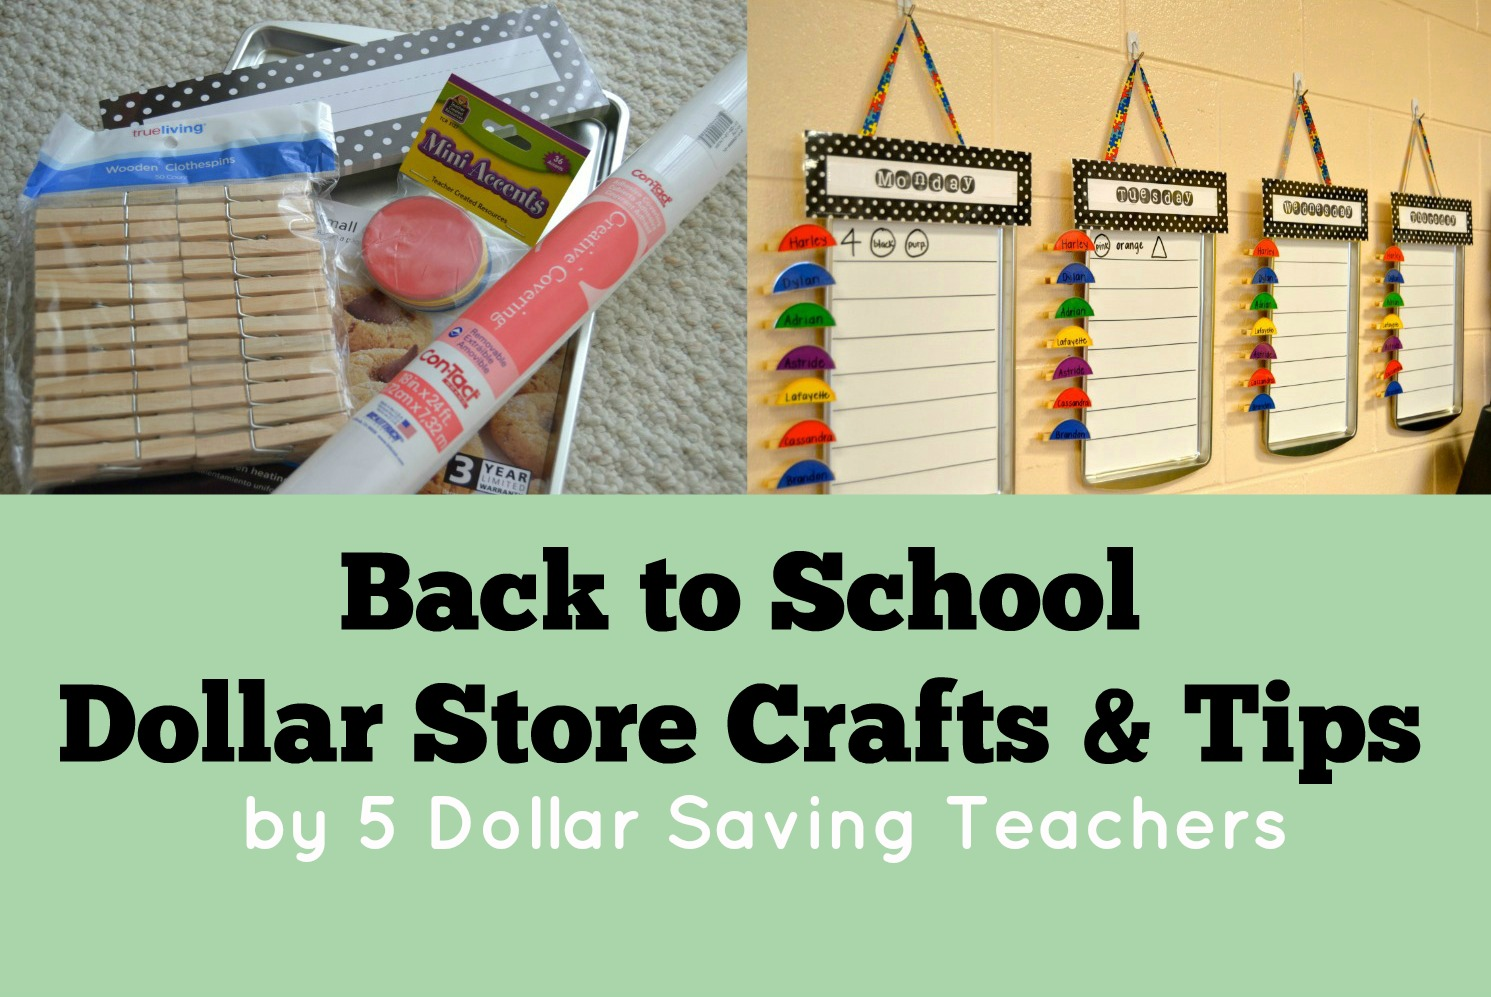 Back to school dollar store crafts tips teacher for Back to school decoration ideas for teachers